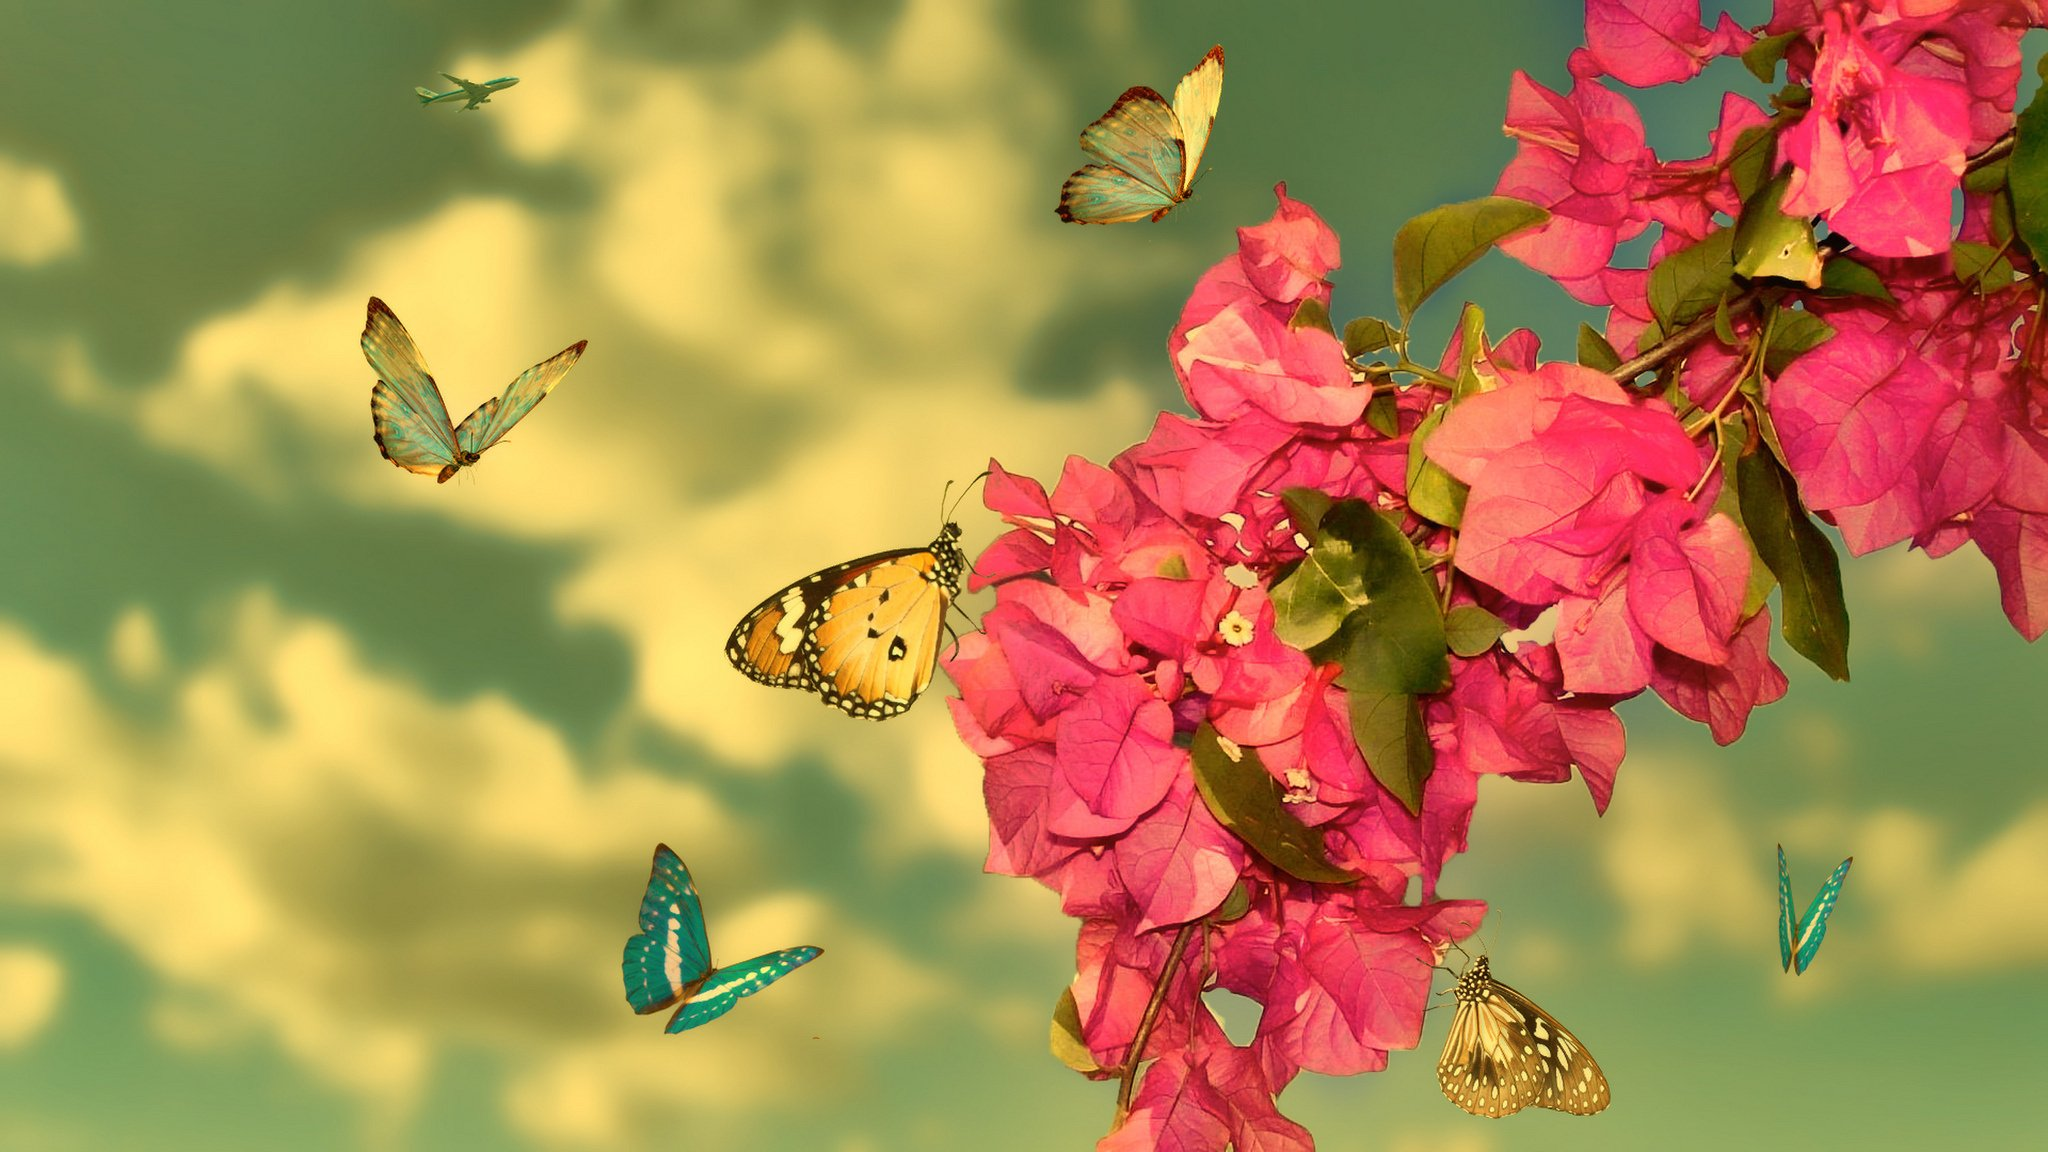 Animal butterfly flower beauty nature wallpaper 2048x1152